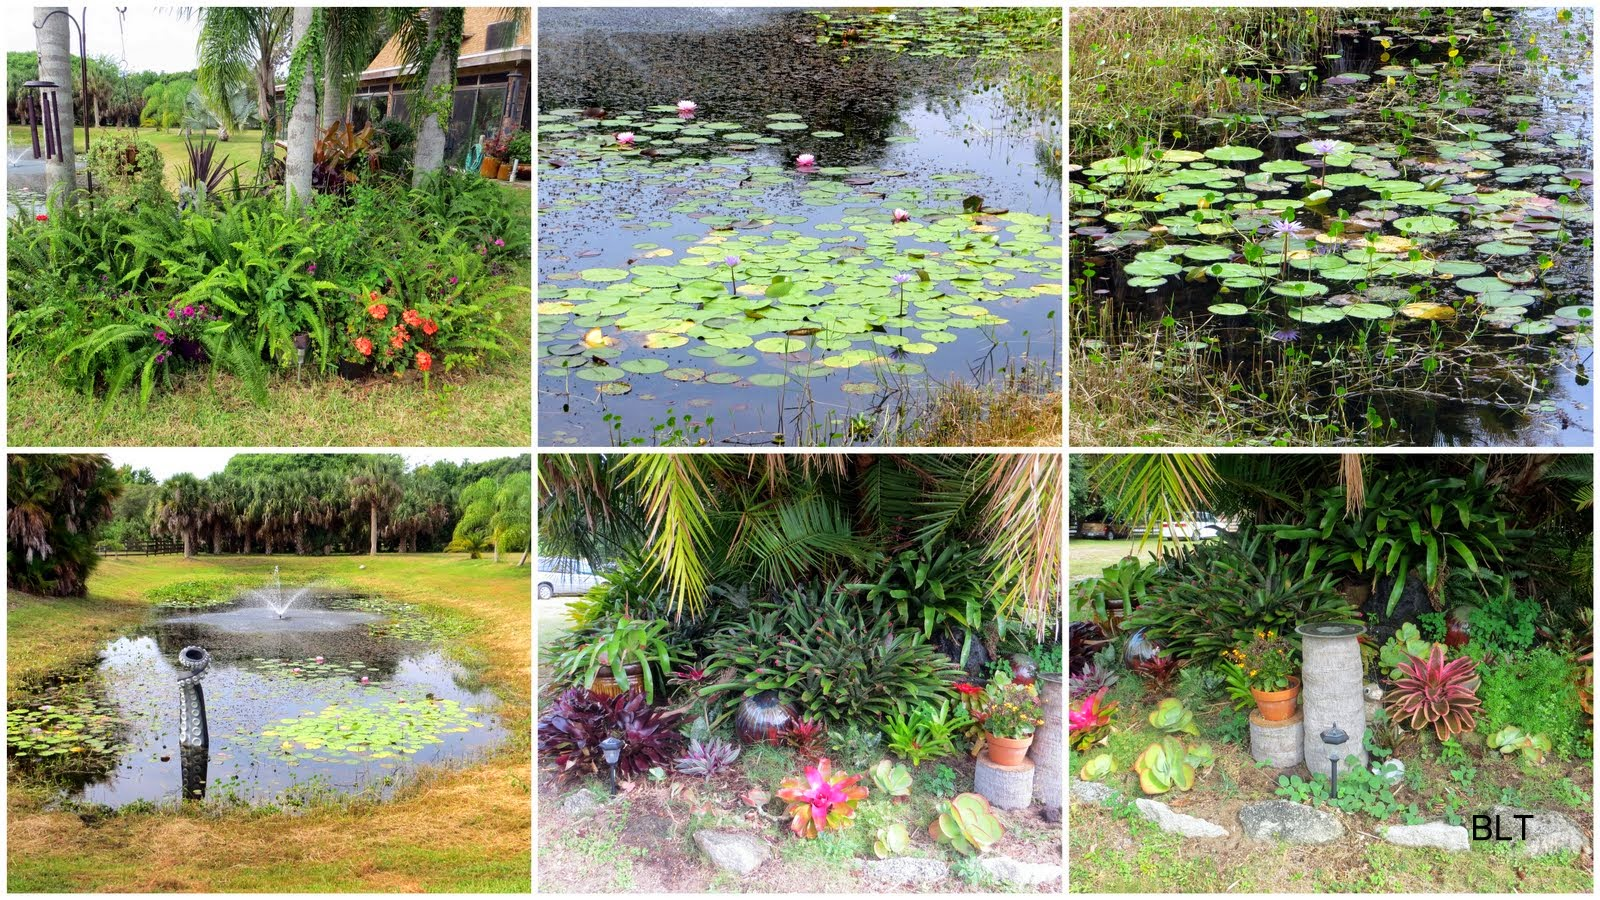 Bob and linda 39 s rv travels flower garden and pond tour for Flower garden ponds